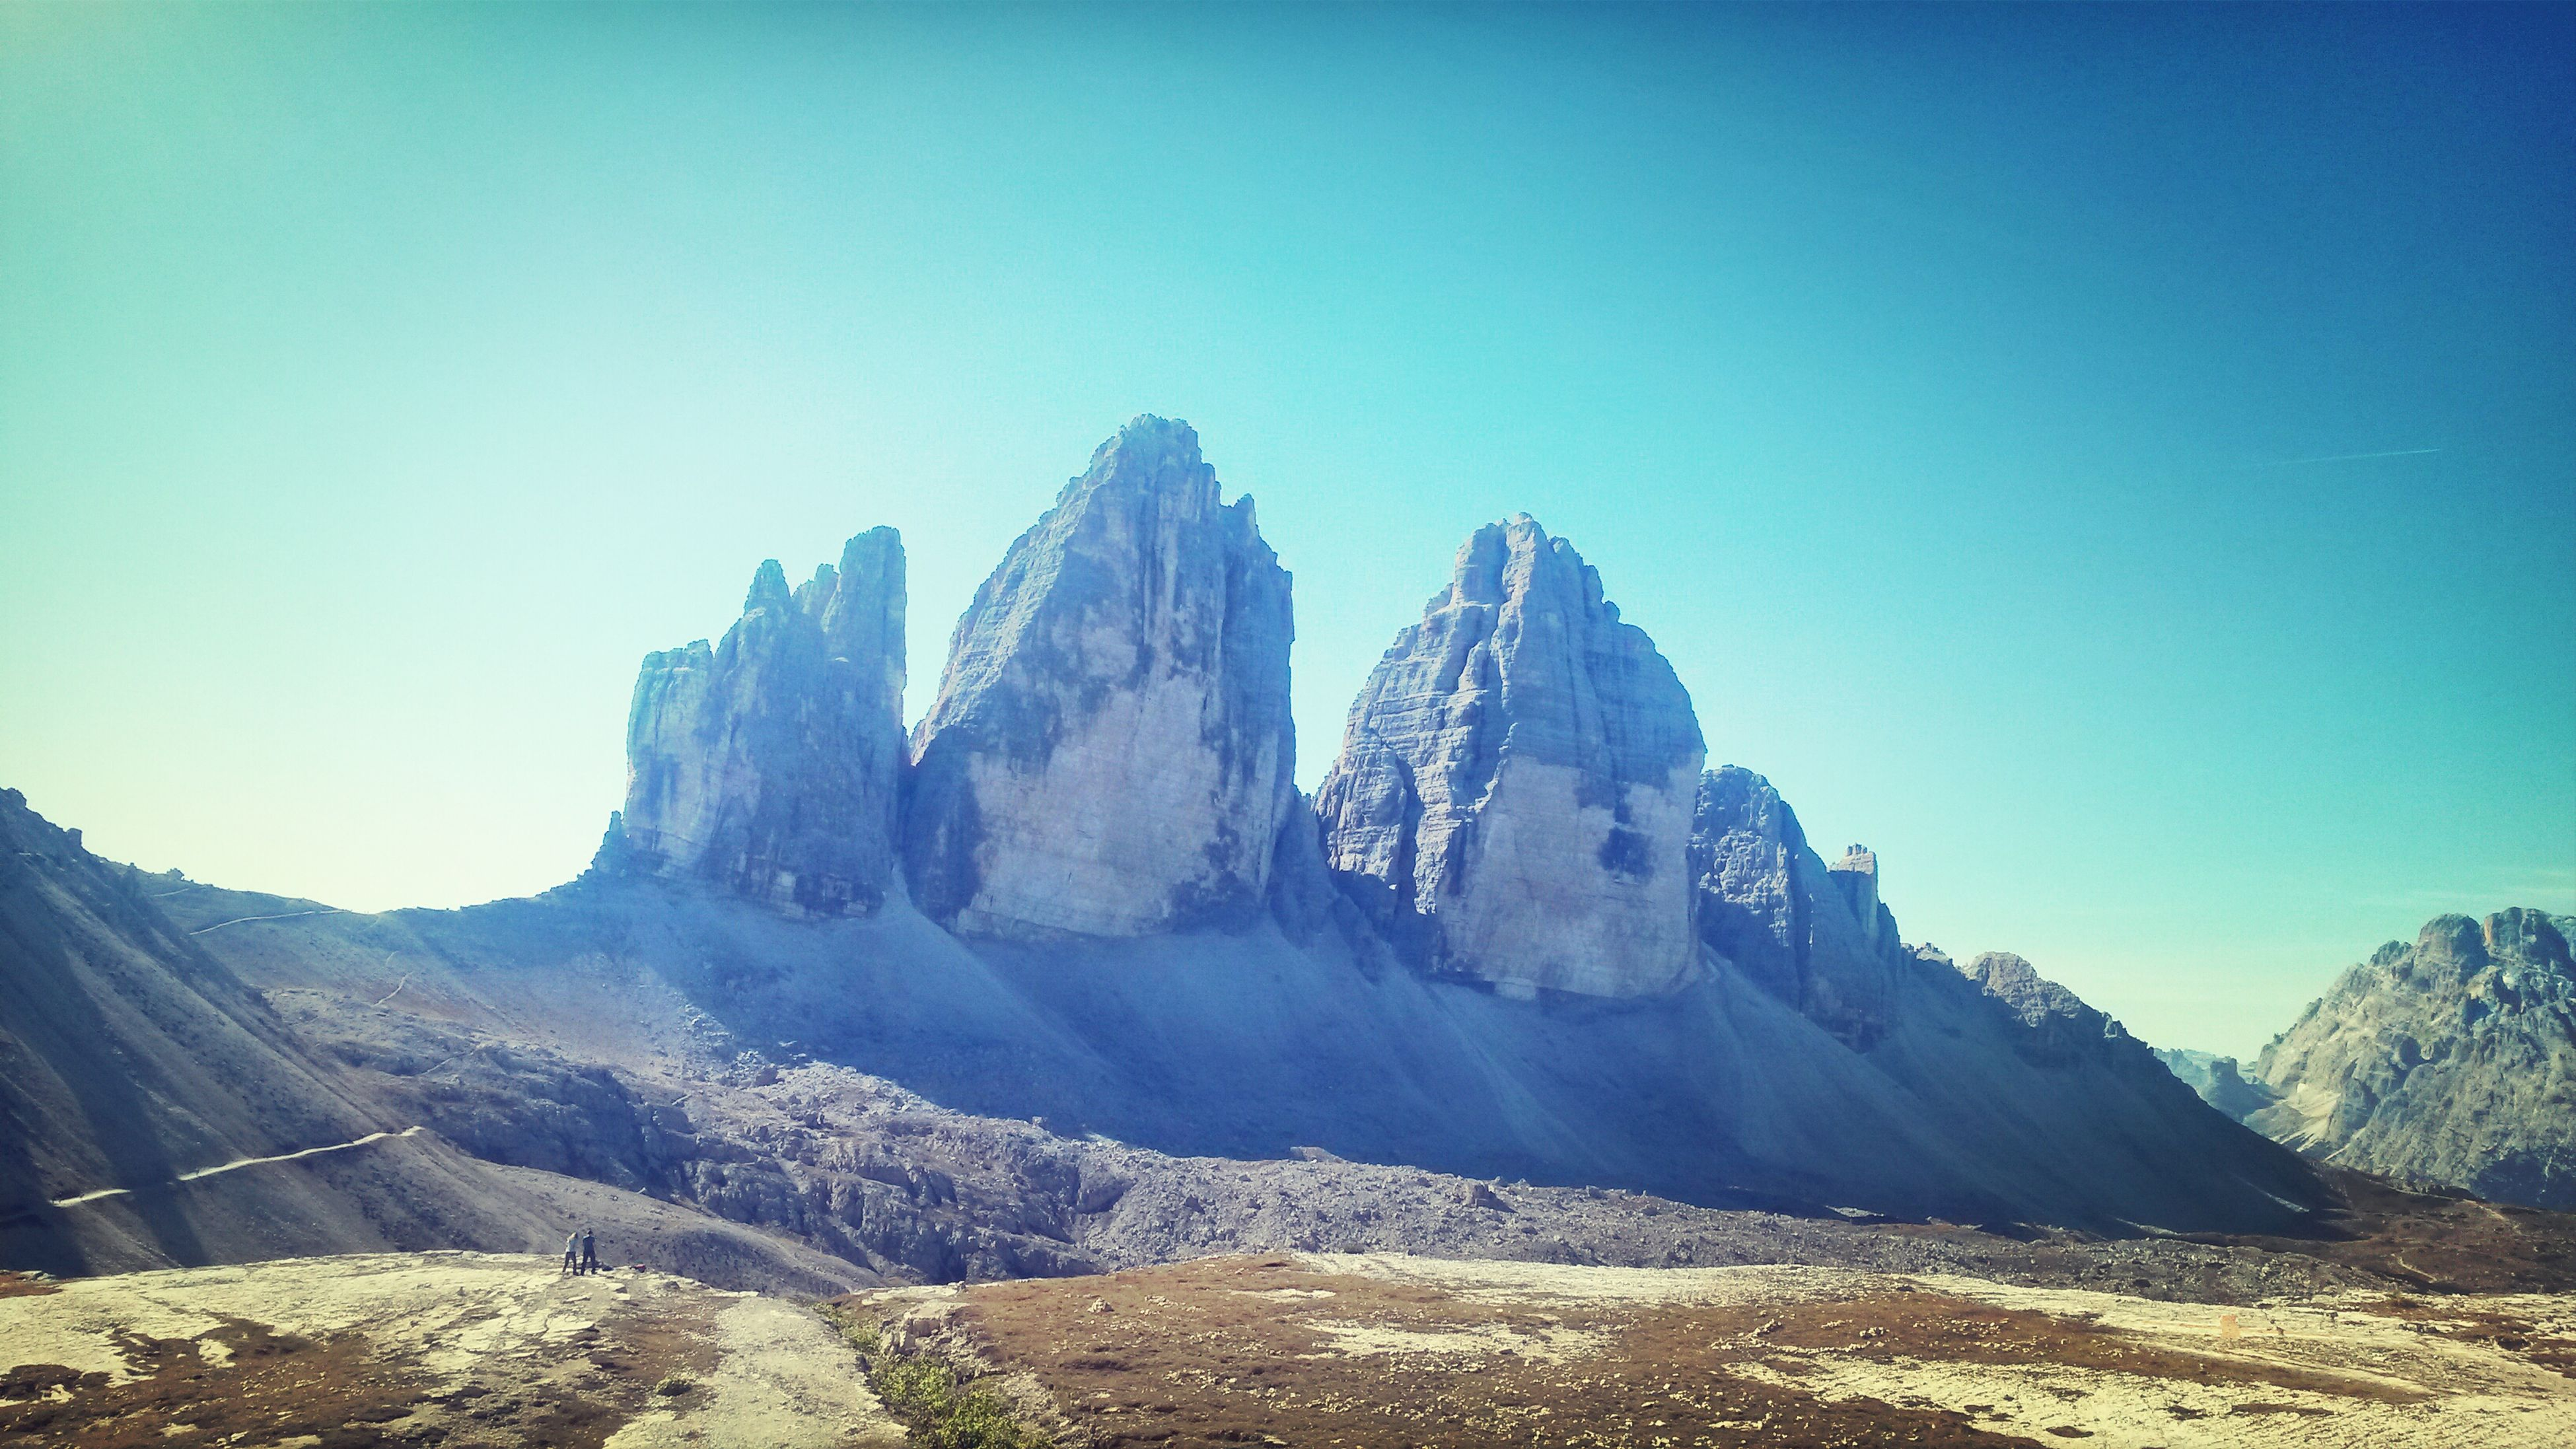 mountain, clear sky, scenics, tranquil scene, tranquility, beauty in nature, mountain range, blue, copy space, landscape, nature, snow, geology, physical geography, winter, non-urban scene, cold temperature, rocky mountains, rock - object, idyllic